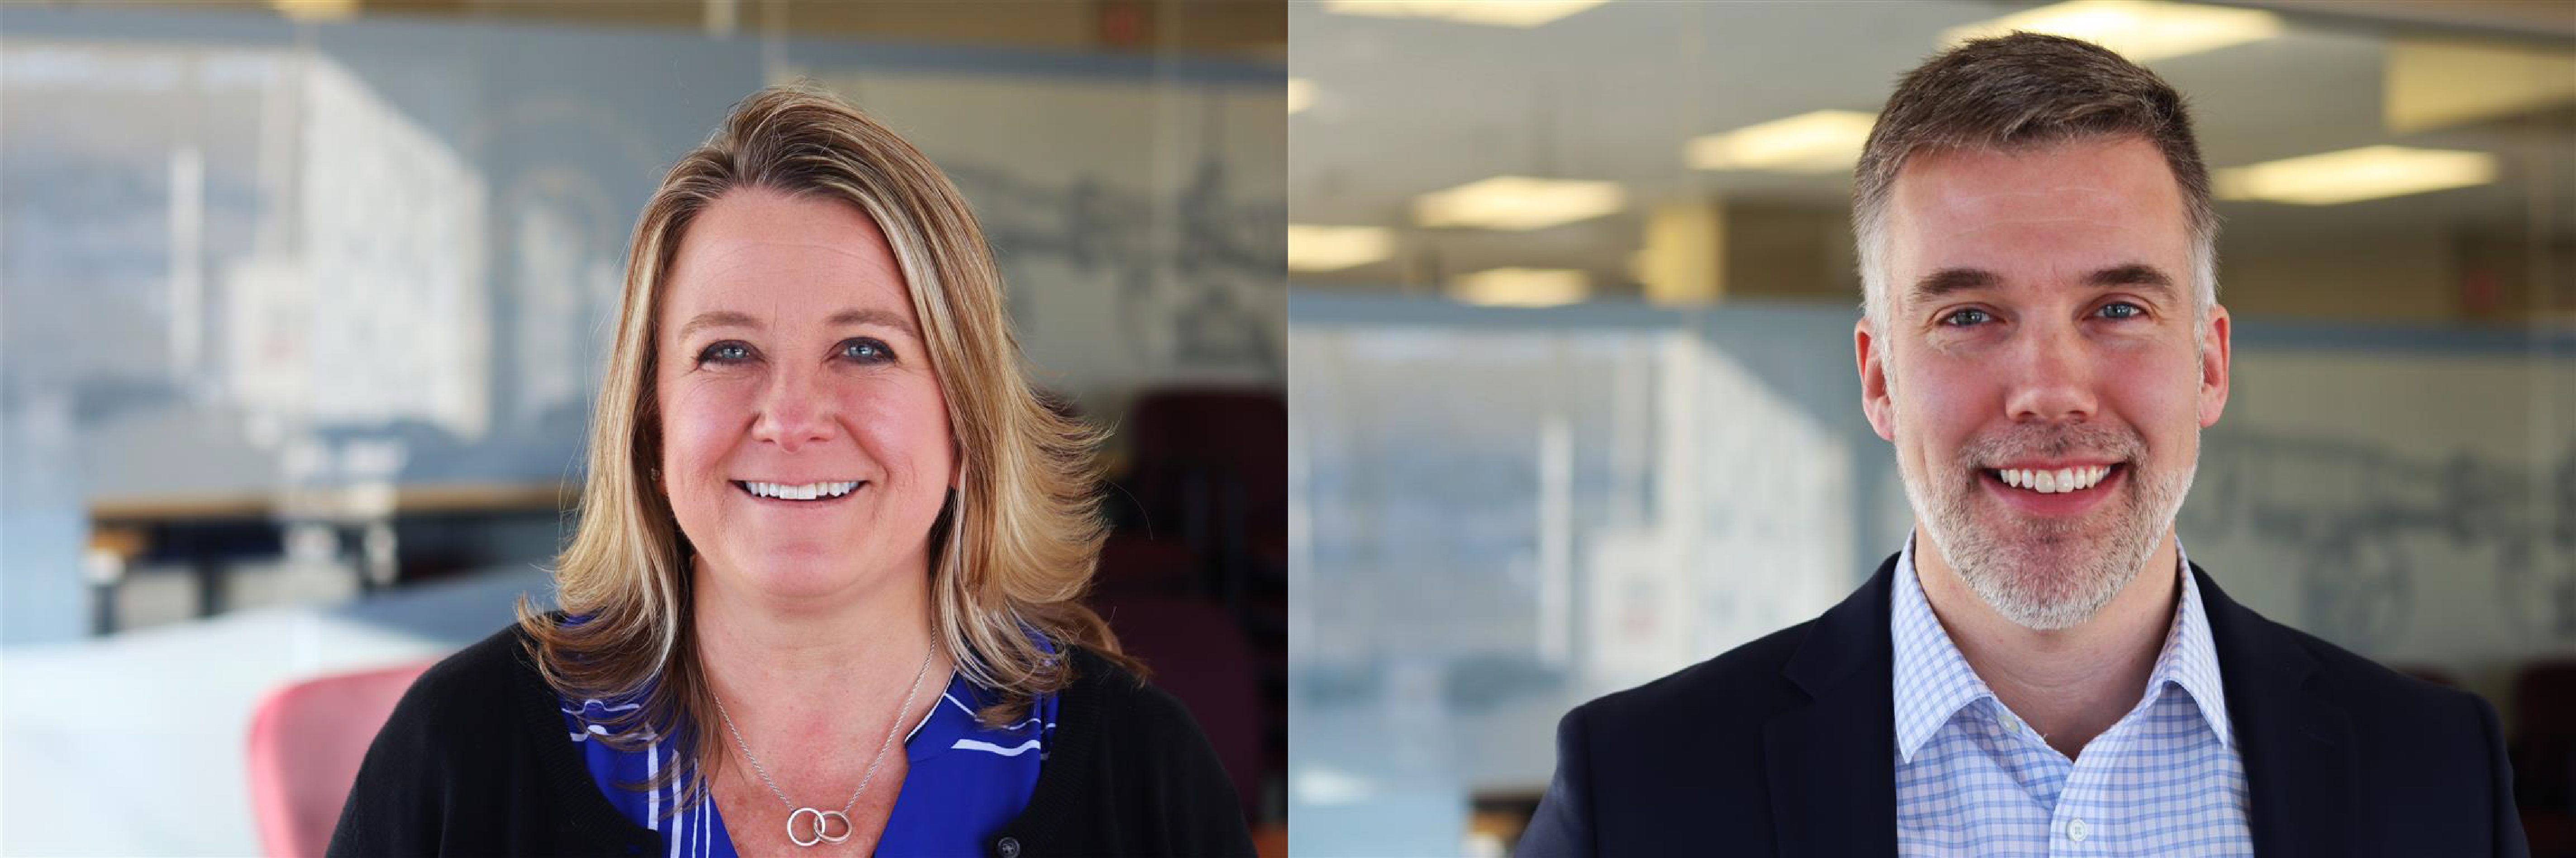 Michelle Palmquist as Chief Financial Officer and Sean Fulton to Vice President of Sales.